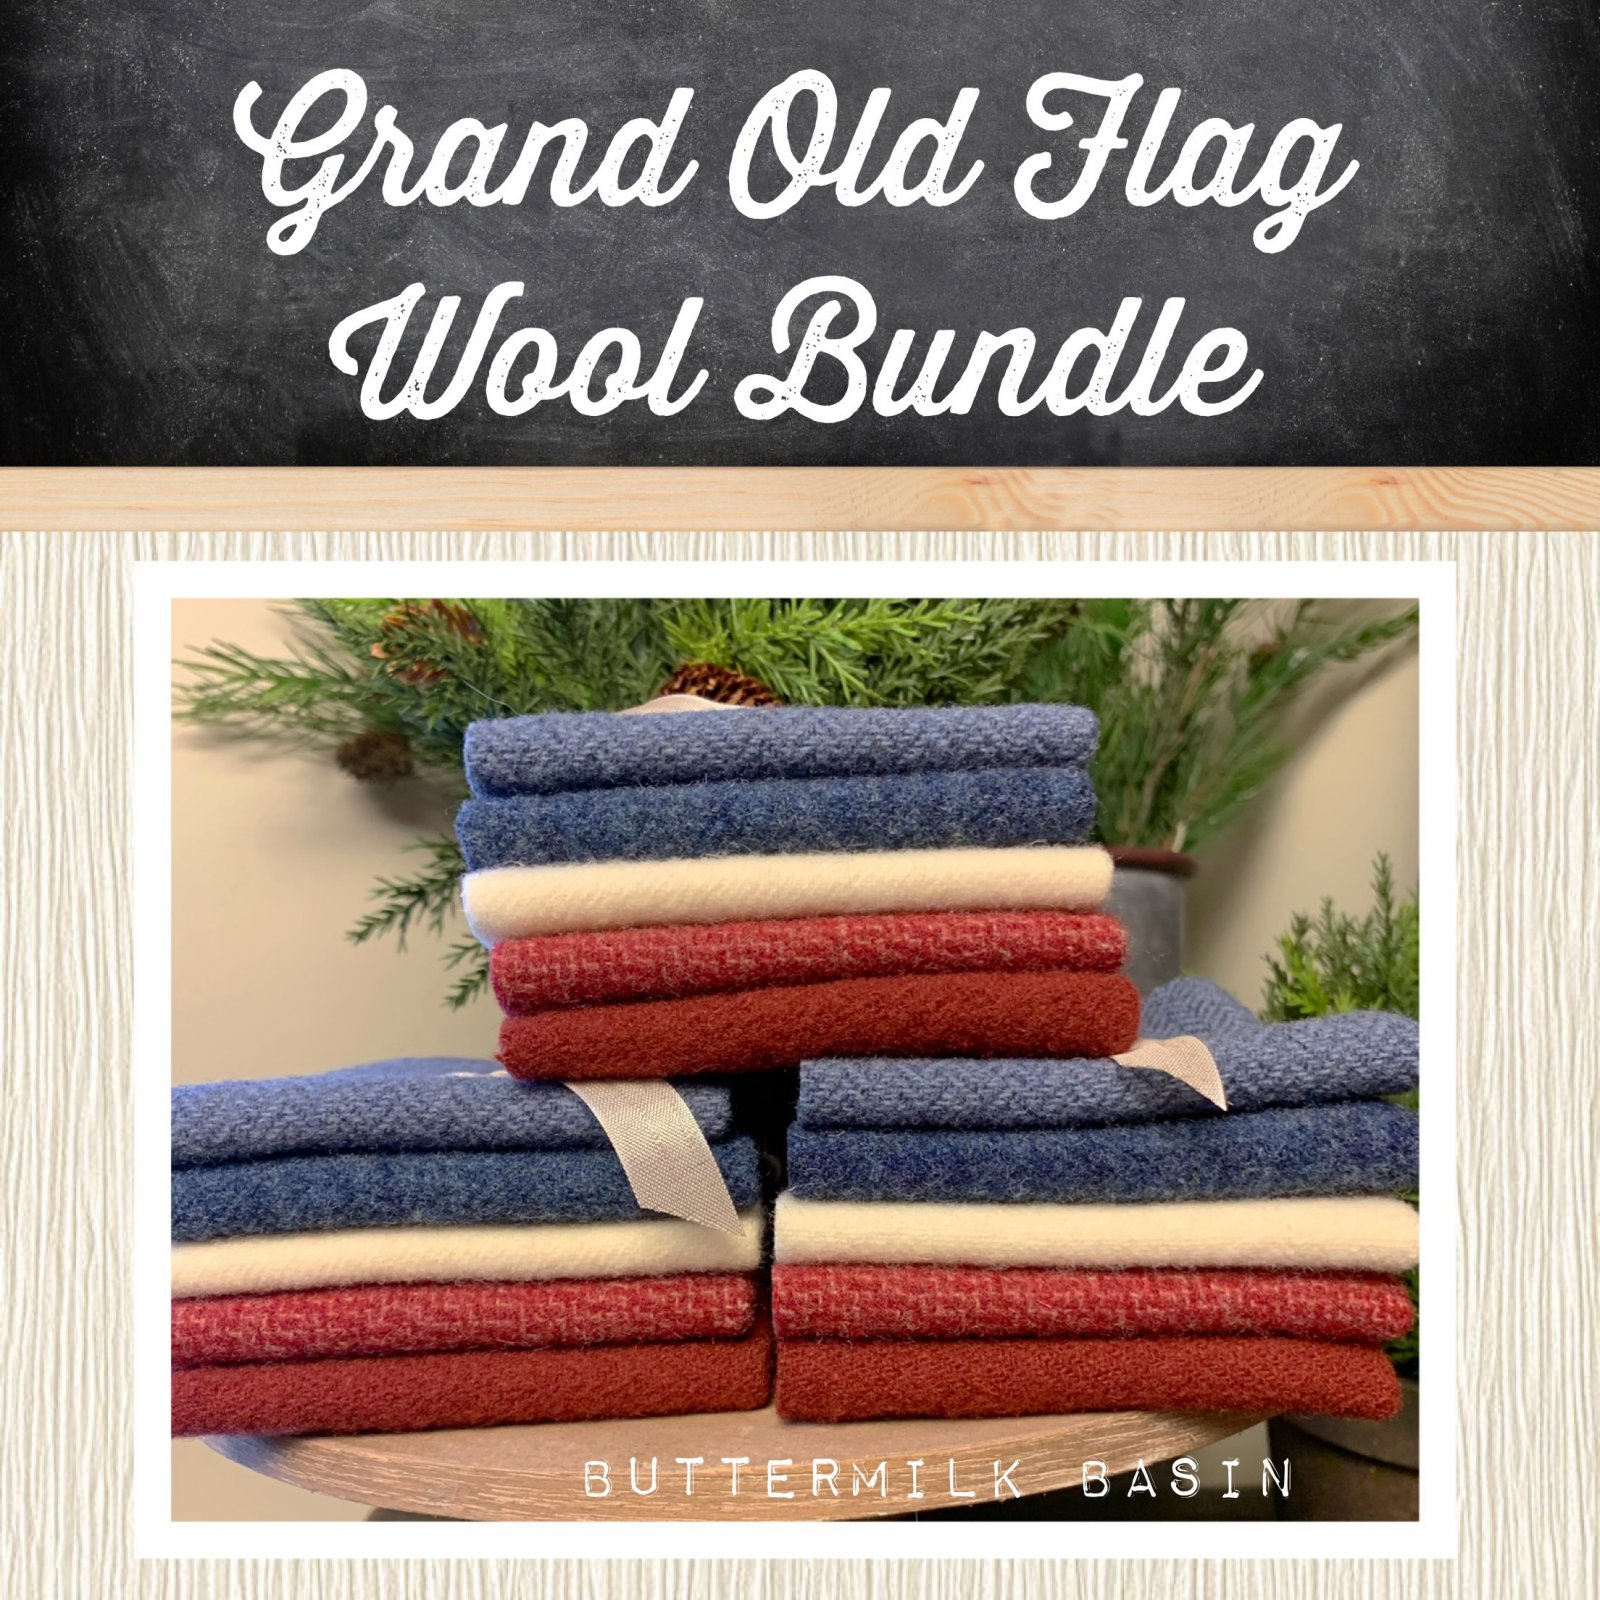 Grand Old Flag Wool Bundle